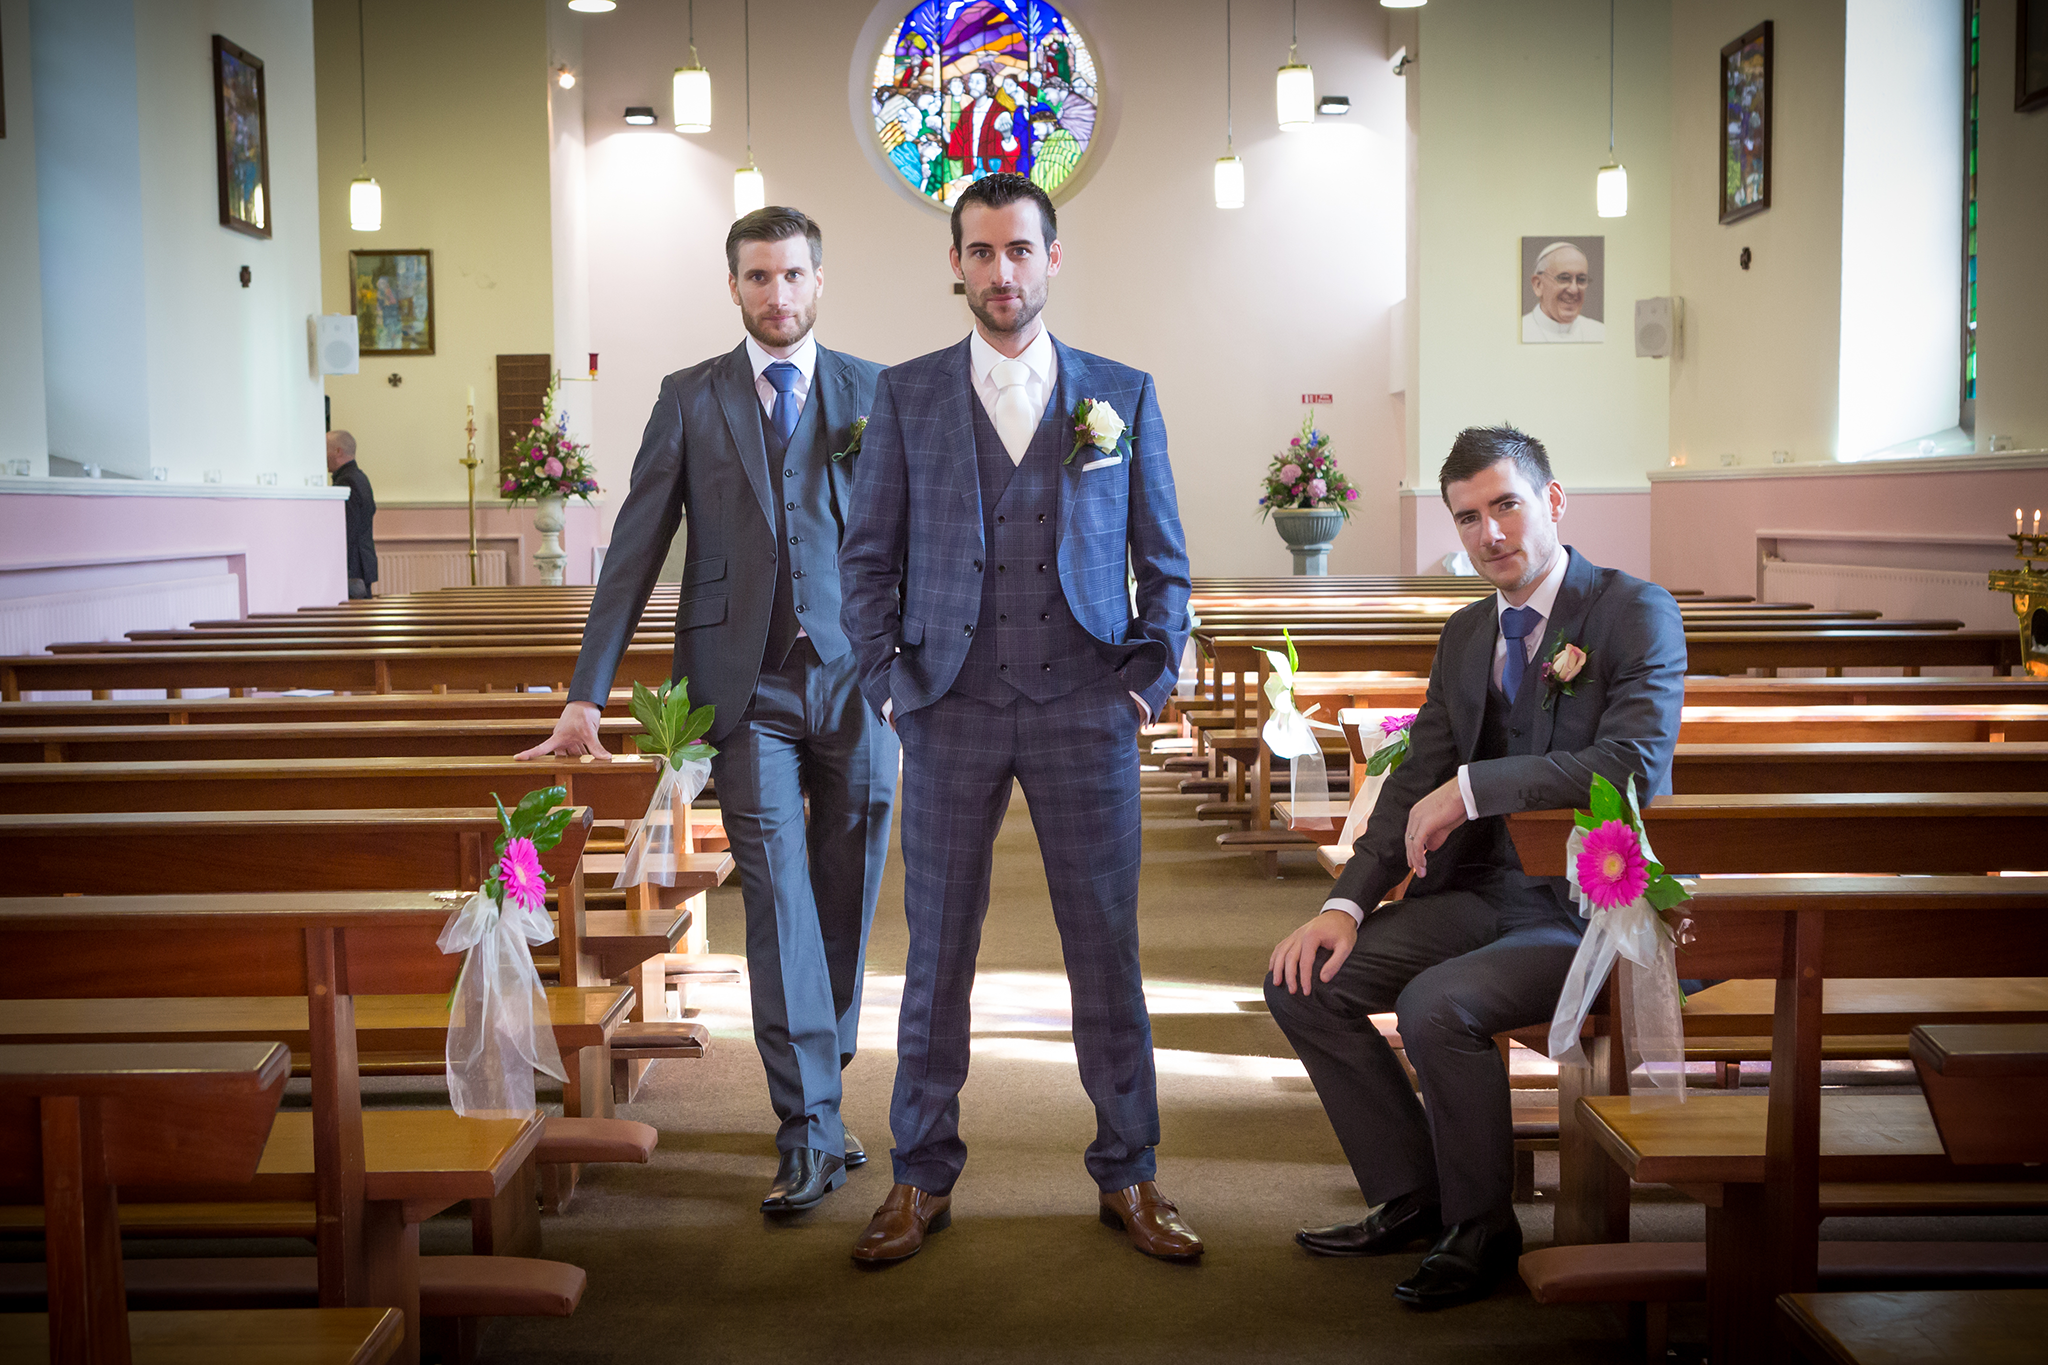 Groom and groomsmen in the church Galway roscommon wedding photographer